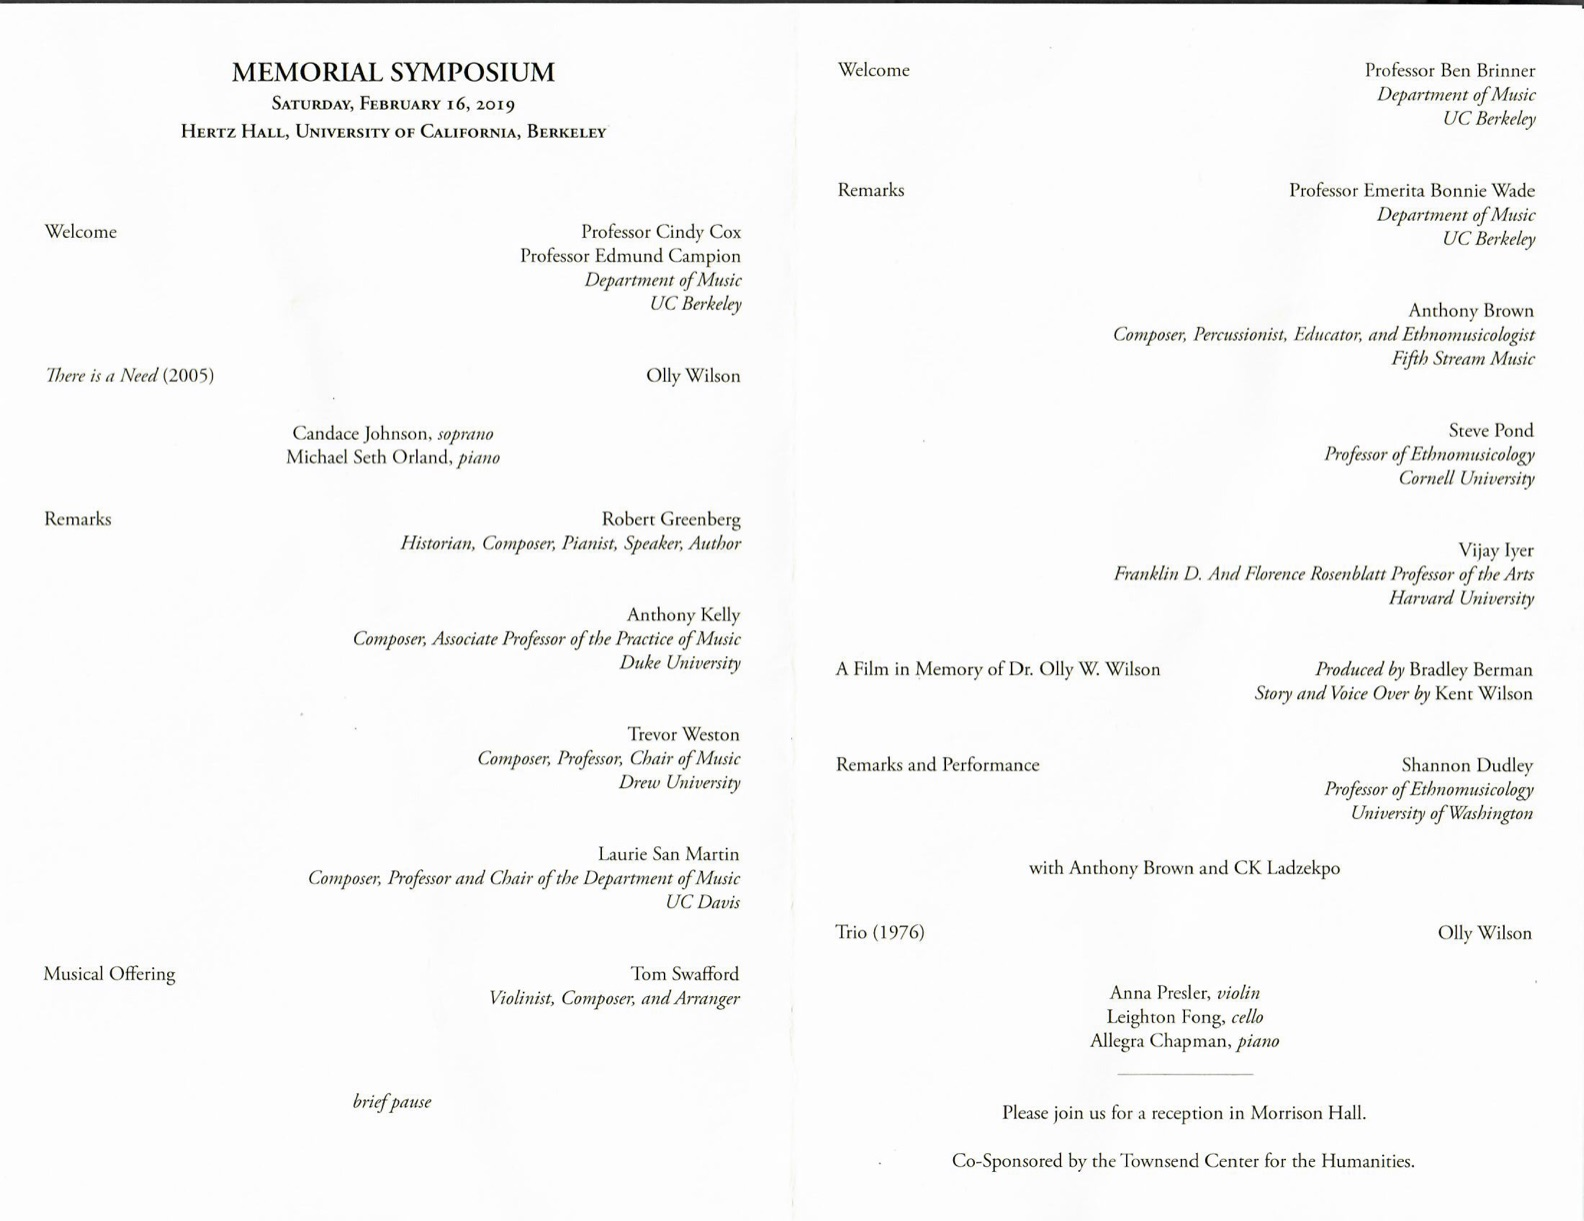 Olly Wilson Symposium Program